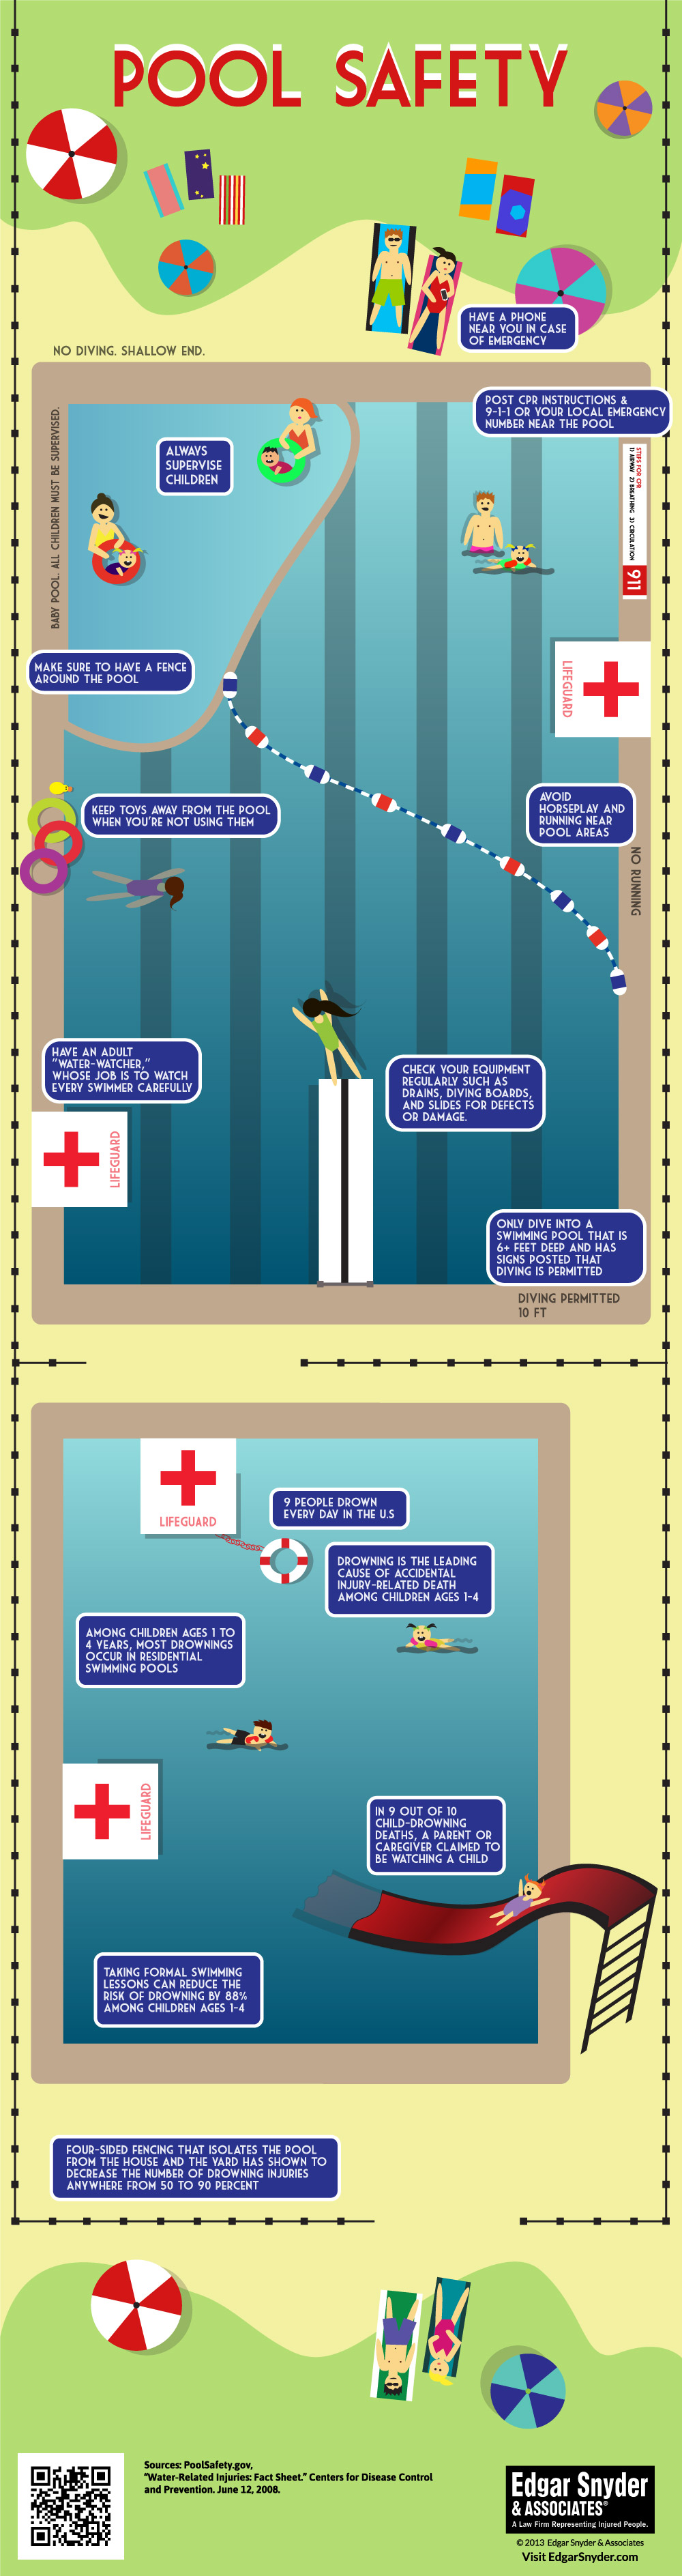 pool-safety-infographic